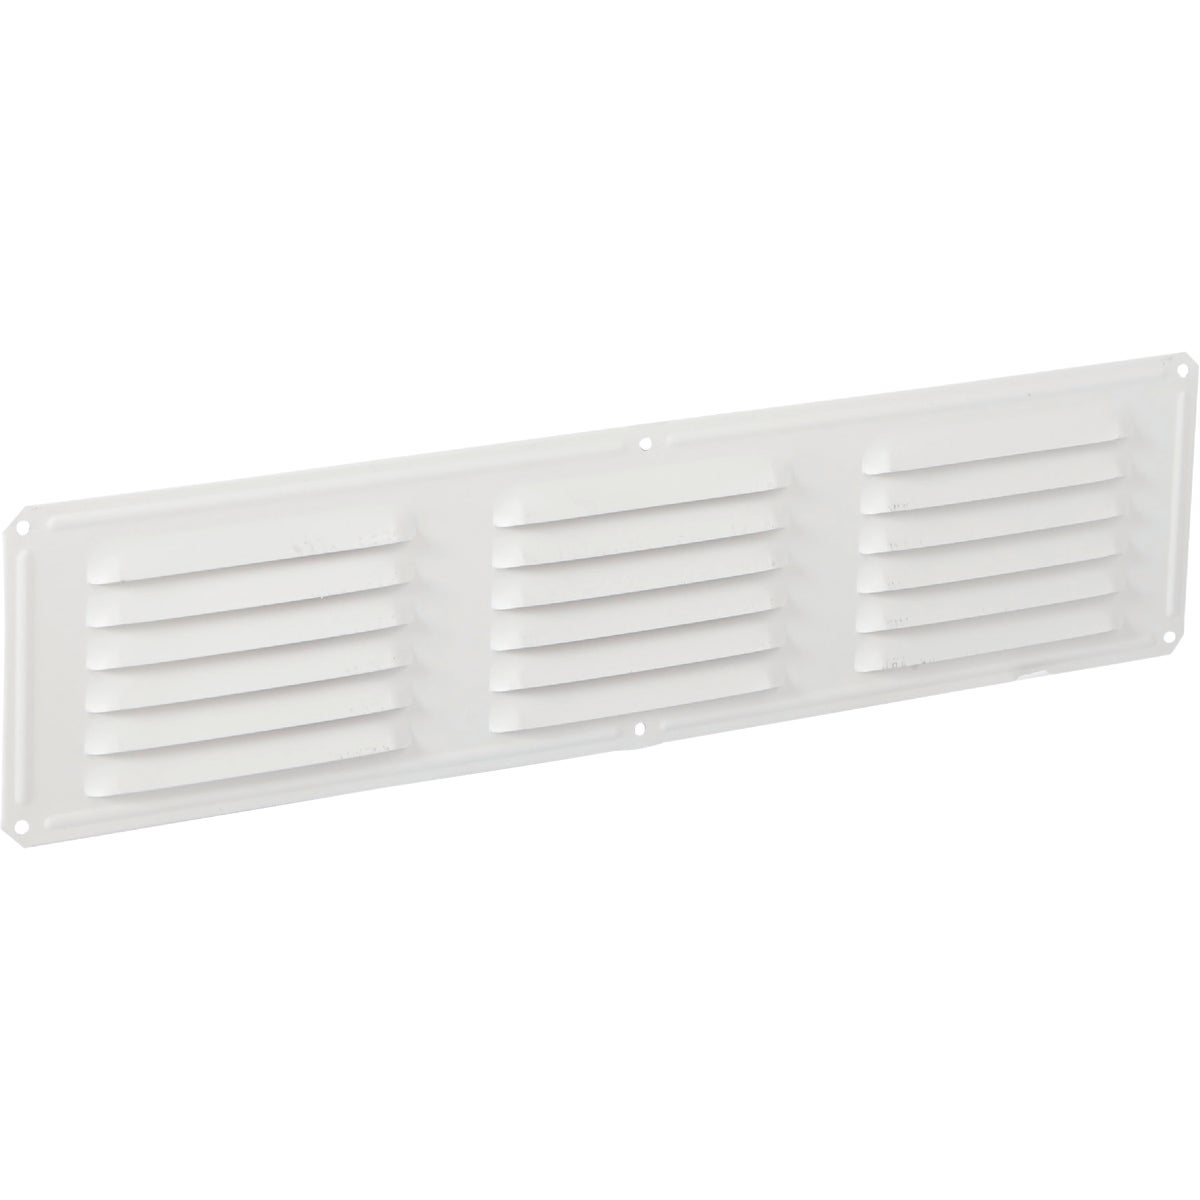 16X4 WHT UNDER EAVE VENT - 84226 by Air Vent Inc